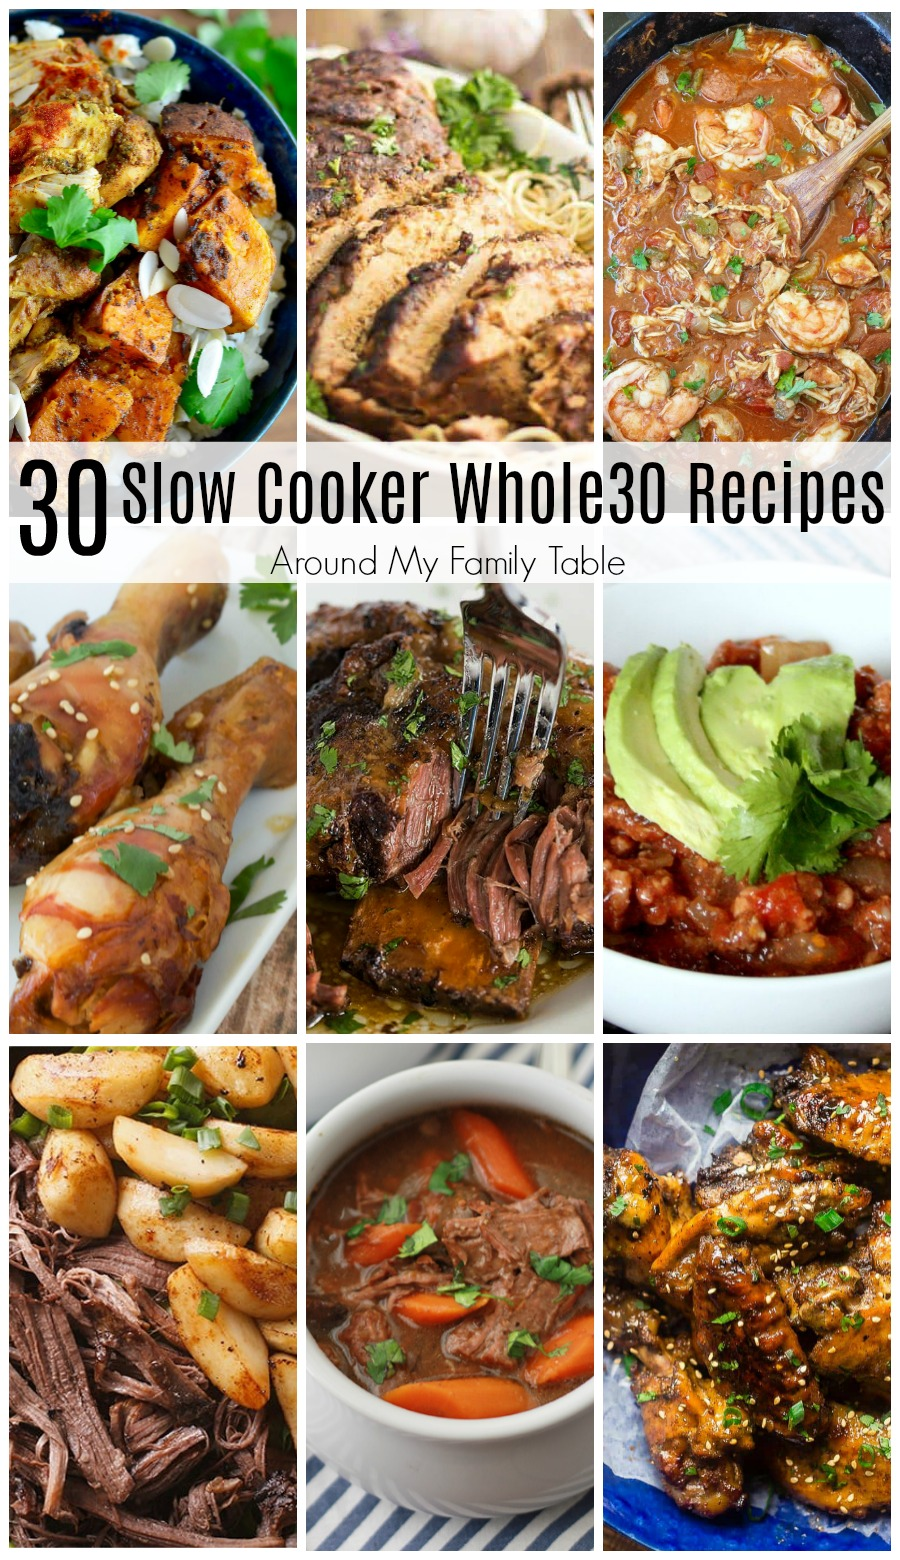 One Month of Whole30 Slow Cooker Recipes is all you need to successfully complete a round of Whole30.  Easy dinners are the best, especially while trying to lose weight or get healthy.